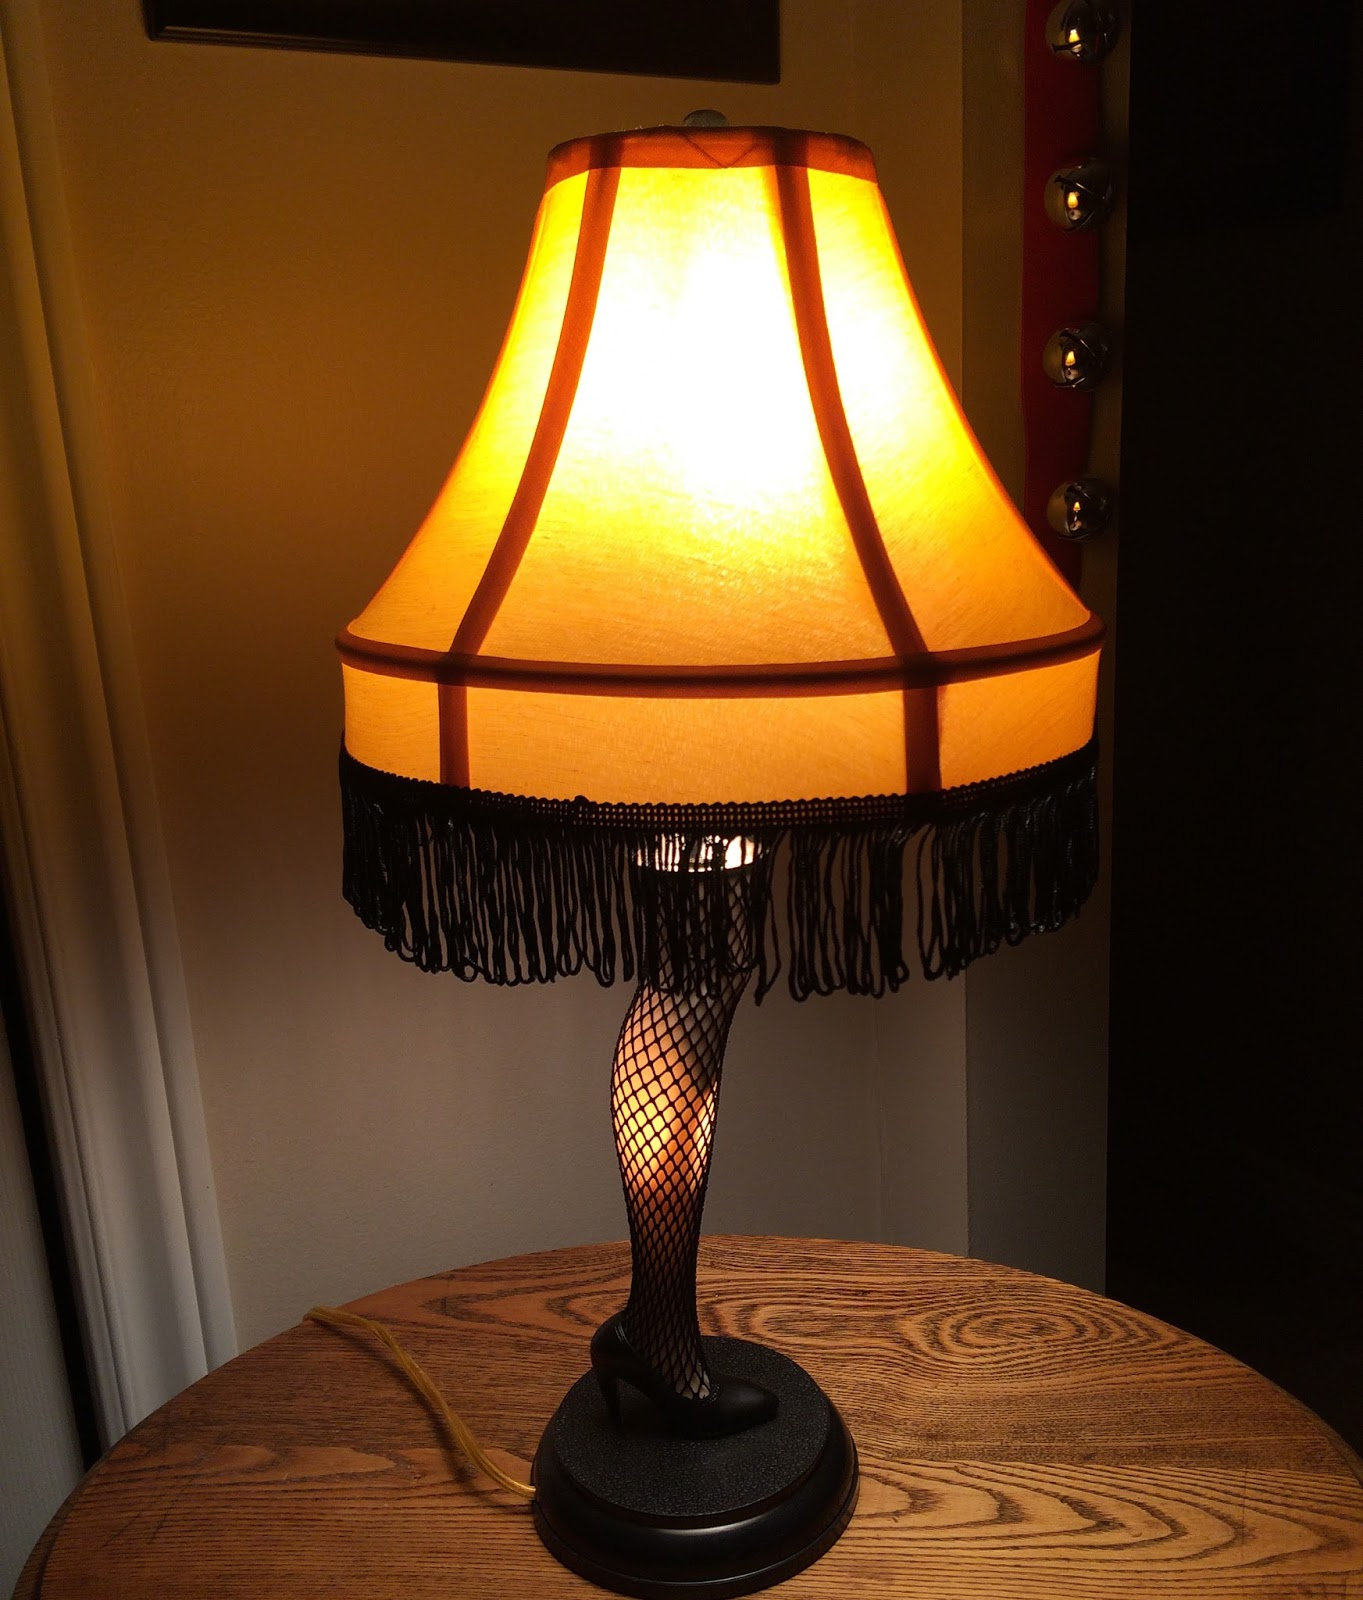 Christmas Story Leg Lamp In Window | www.imgkid.com - The ...